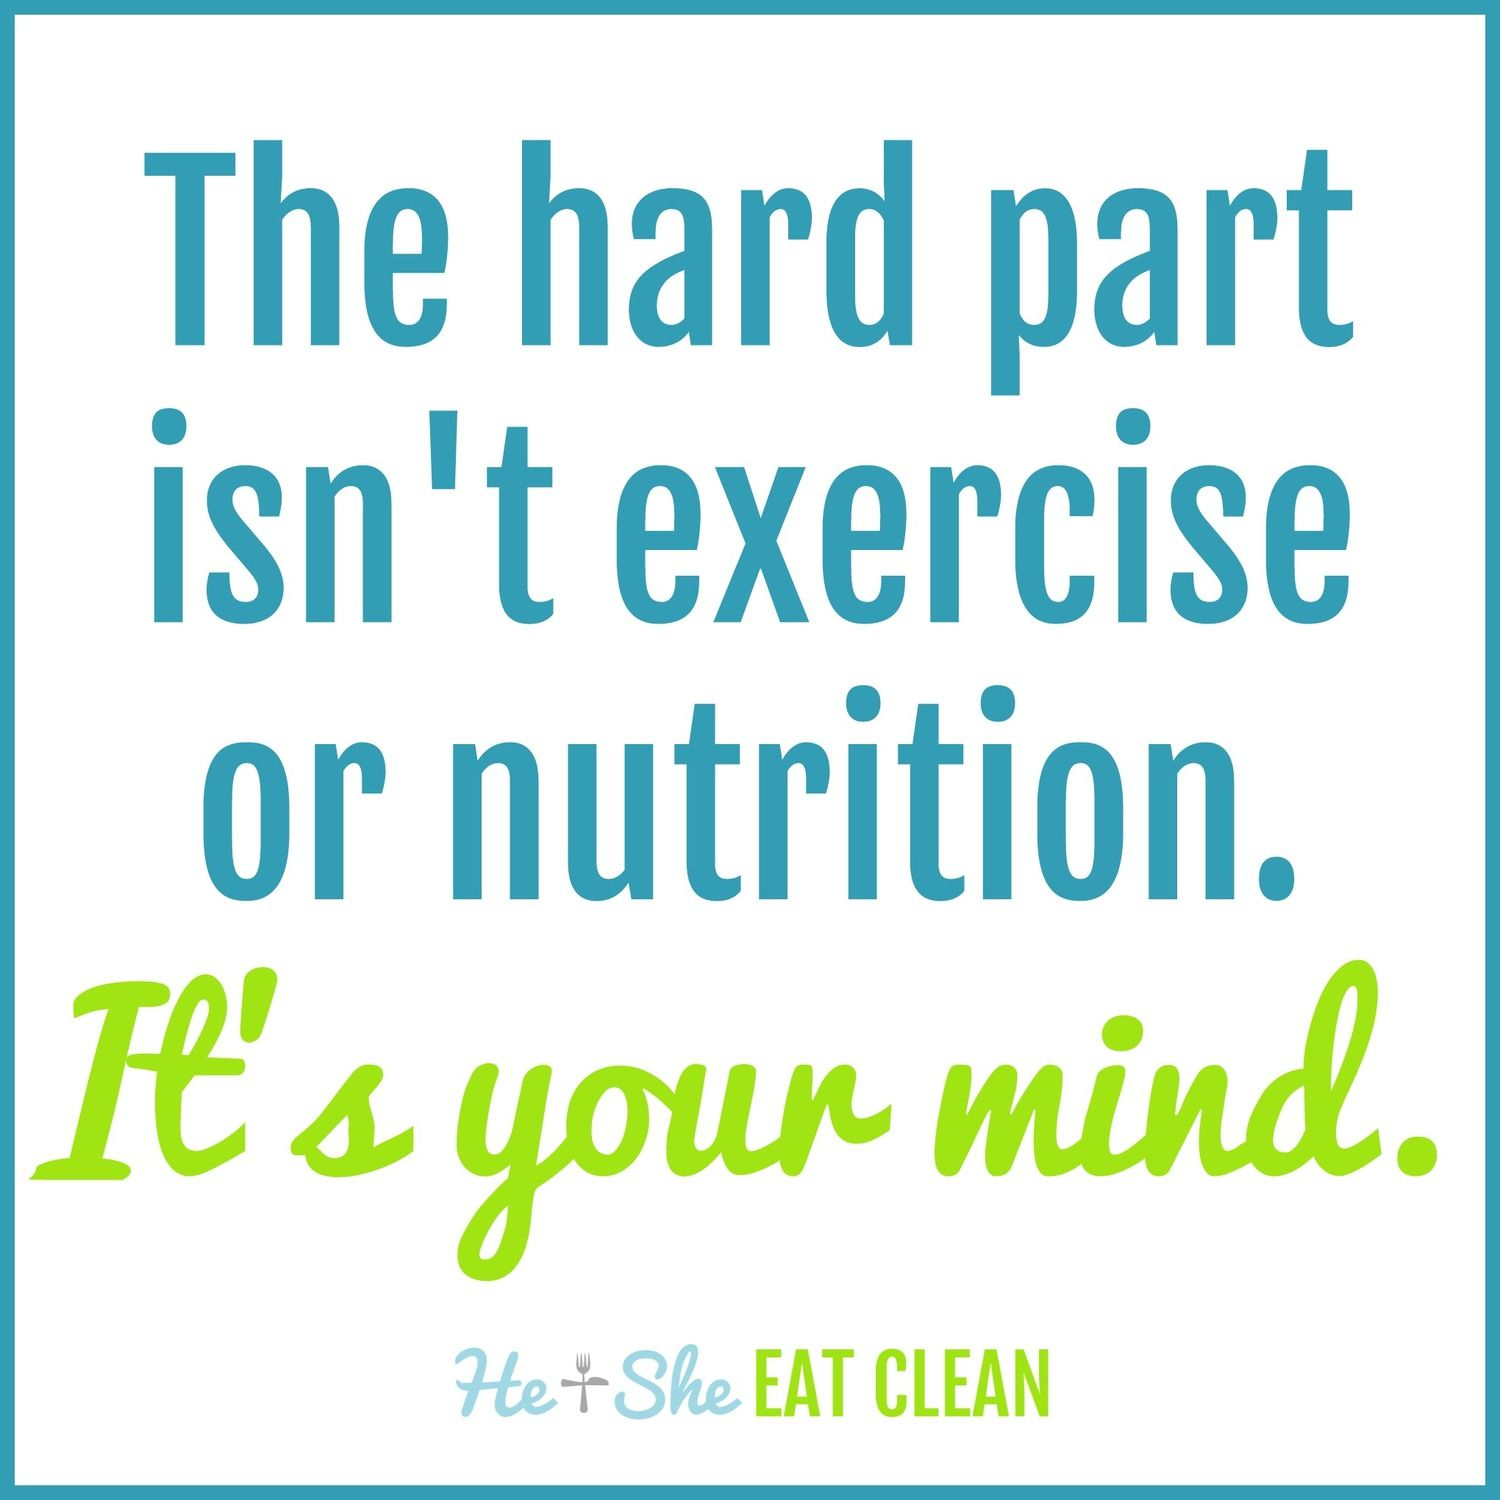 5 Fitness Quotes to Motivate You! Fitness quotes